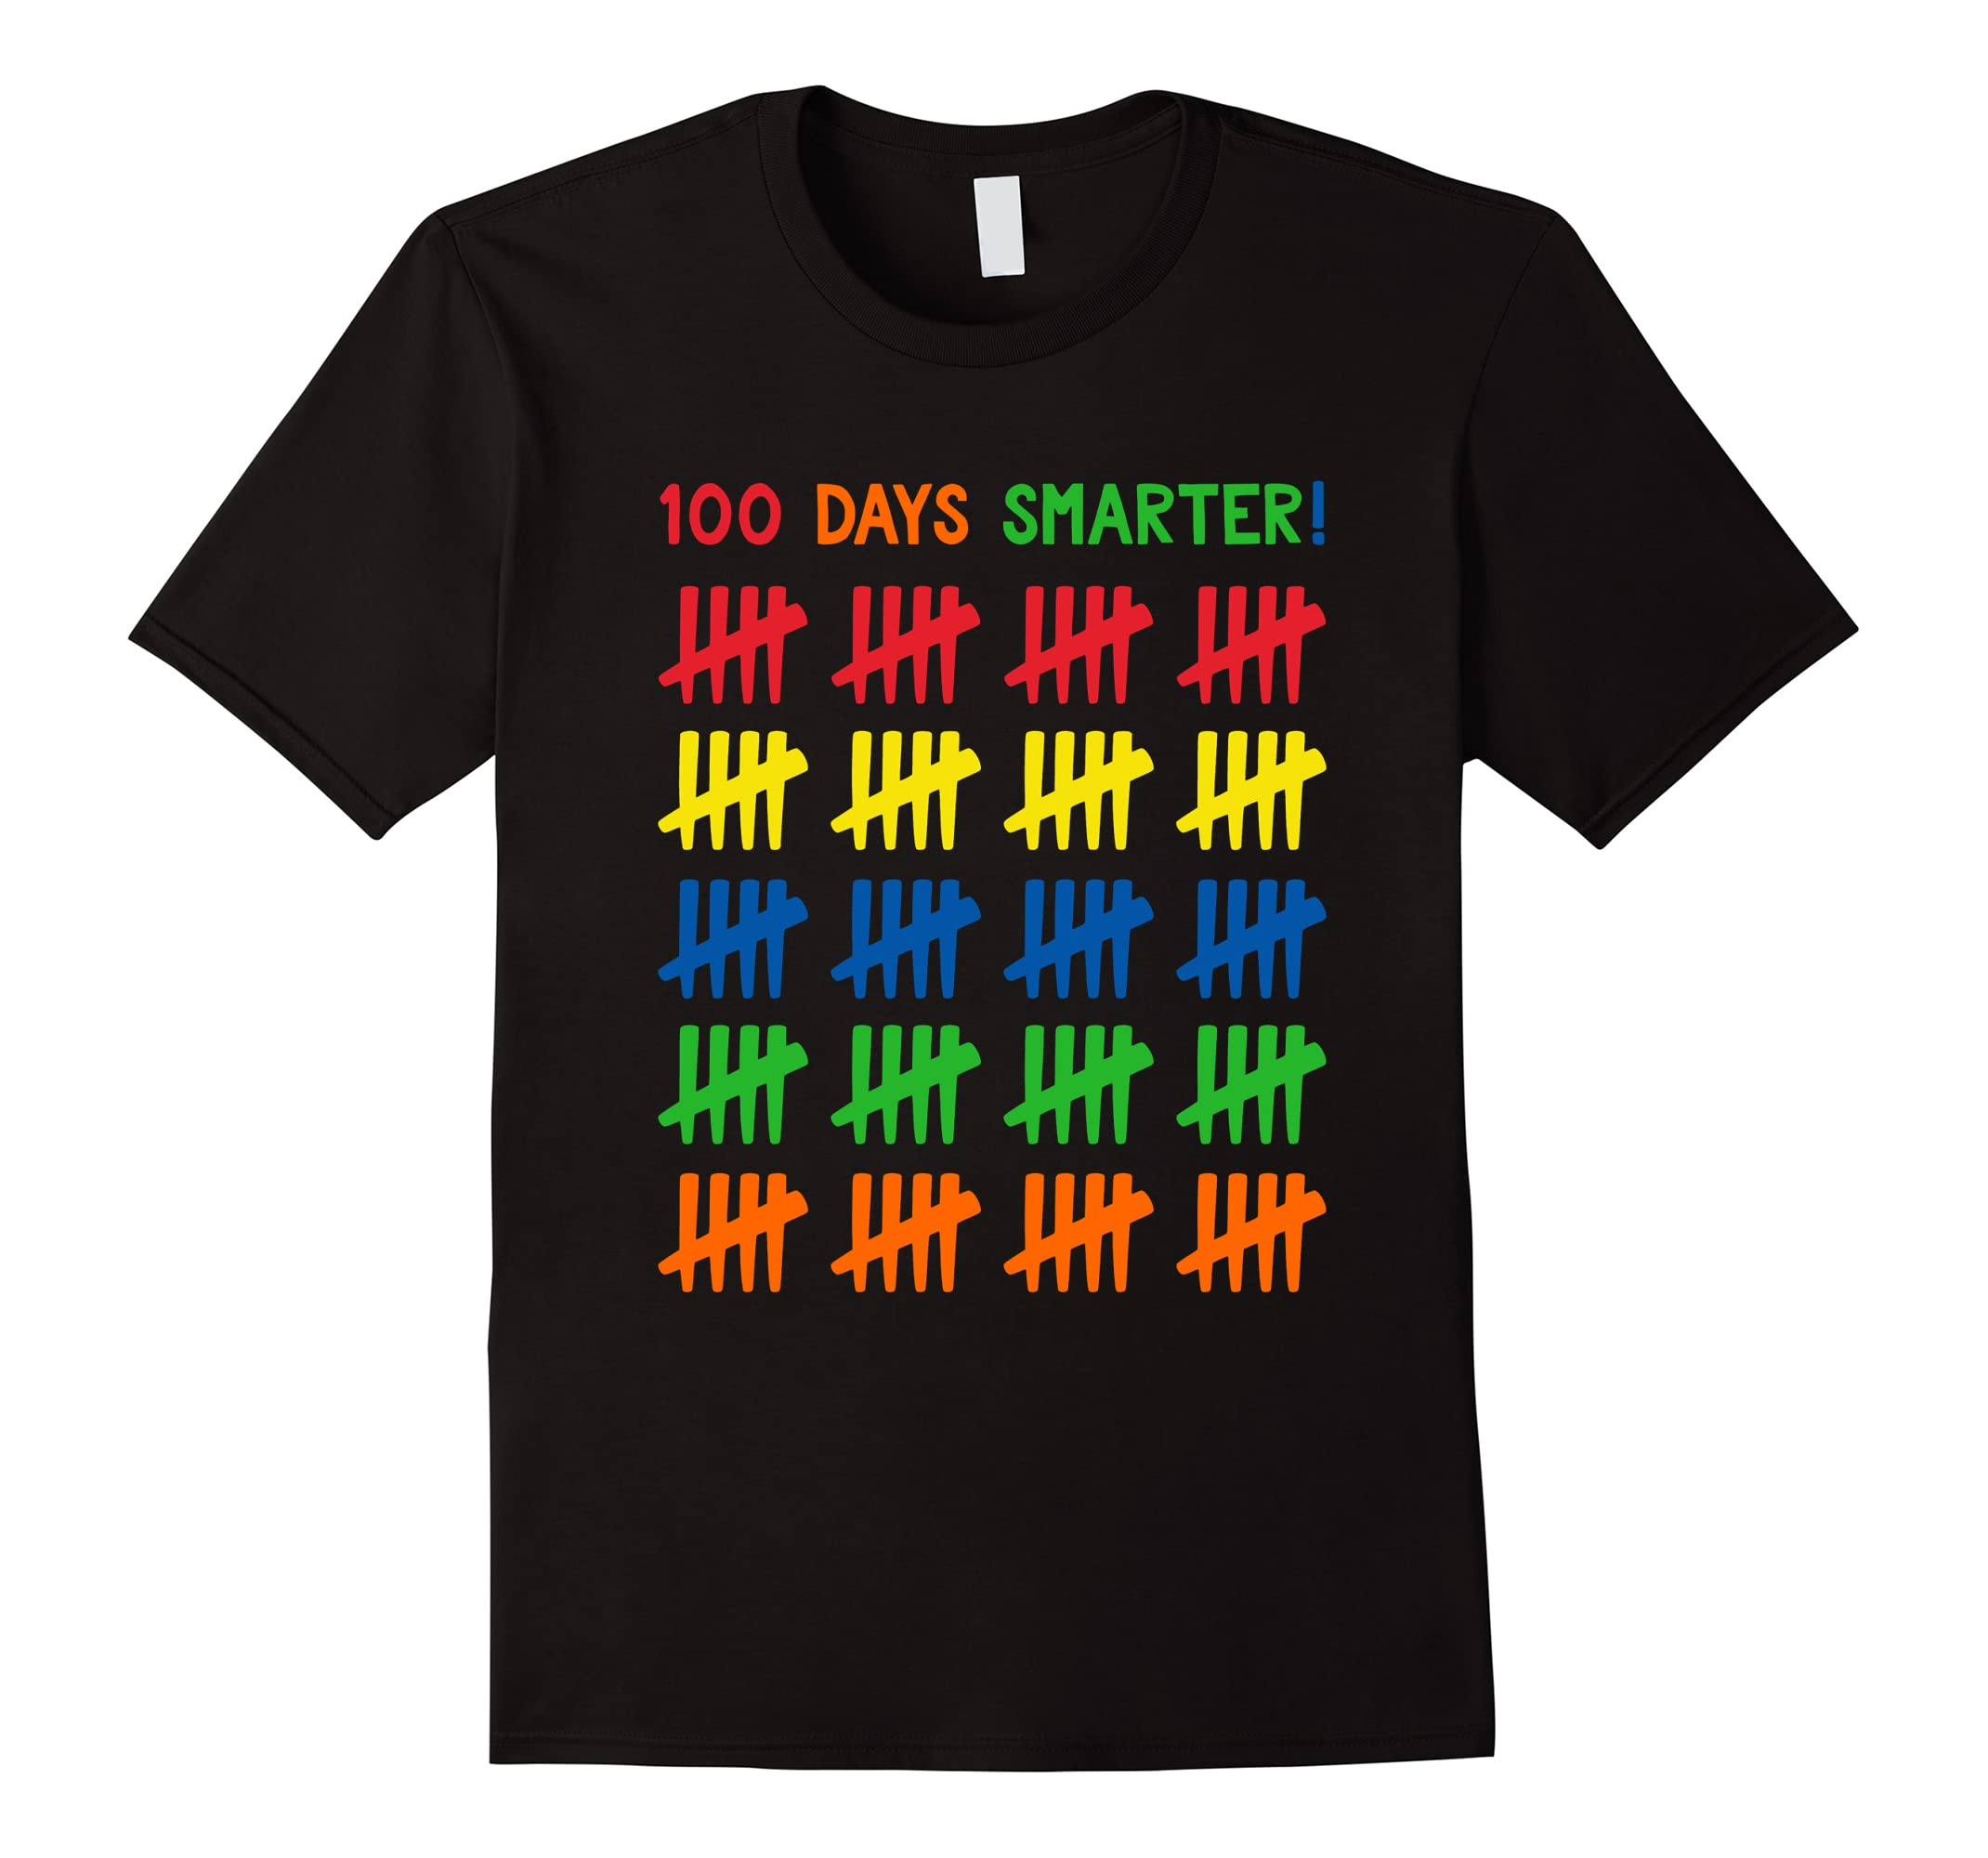 100 Days Of School Tally Marks Shirt Kids 100 Days Smarter-RT